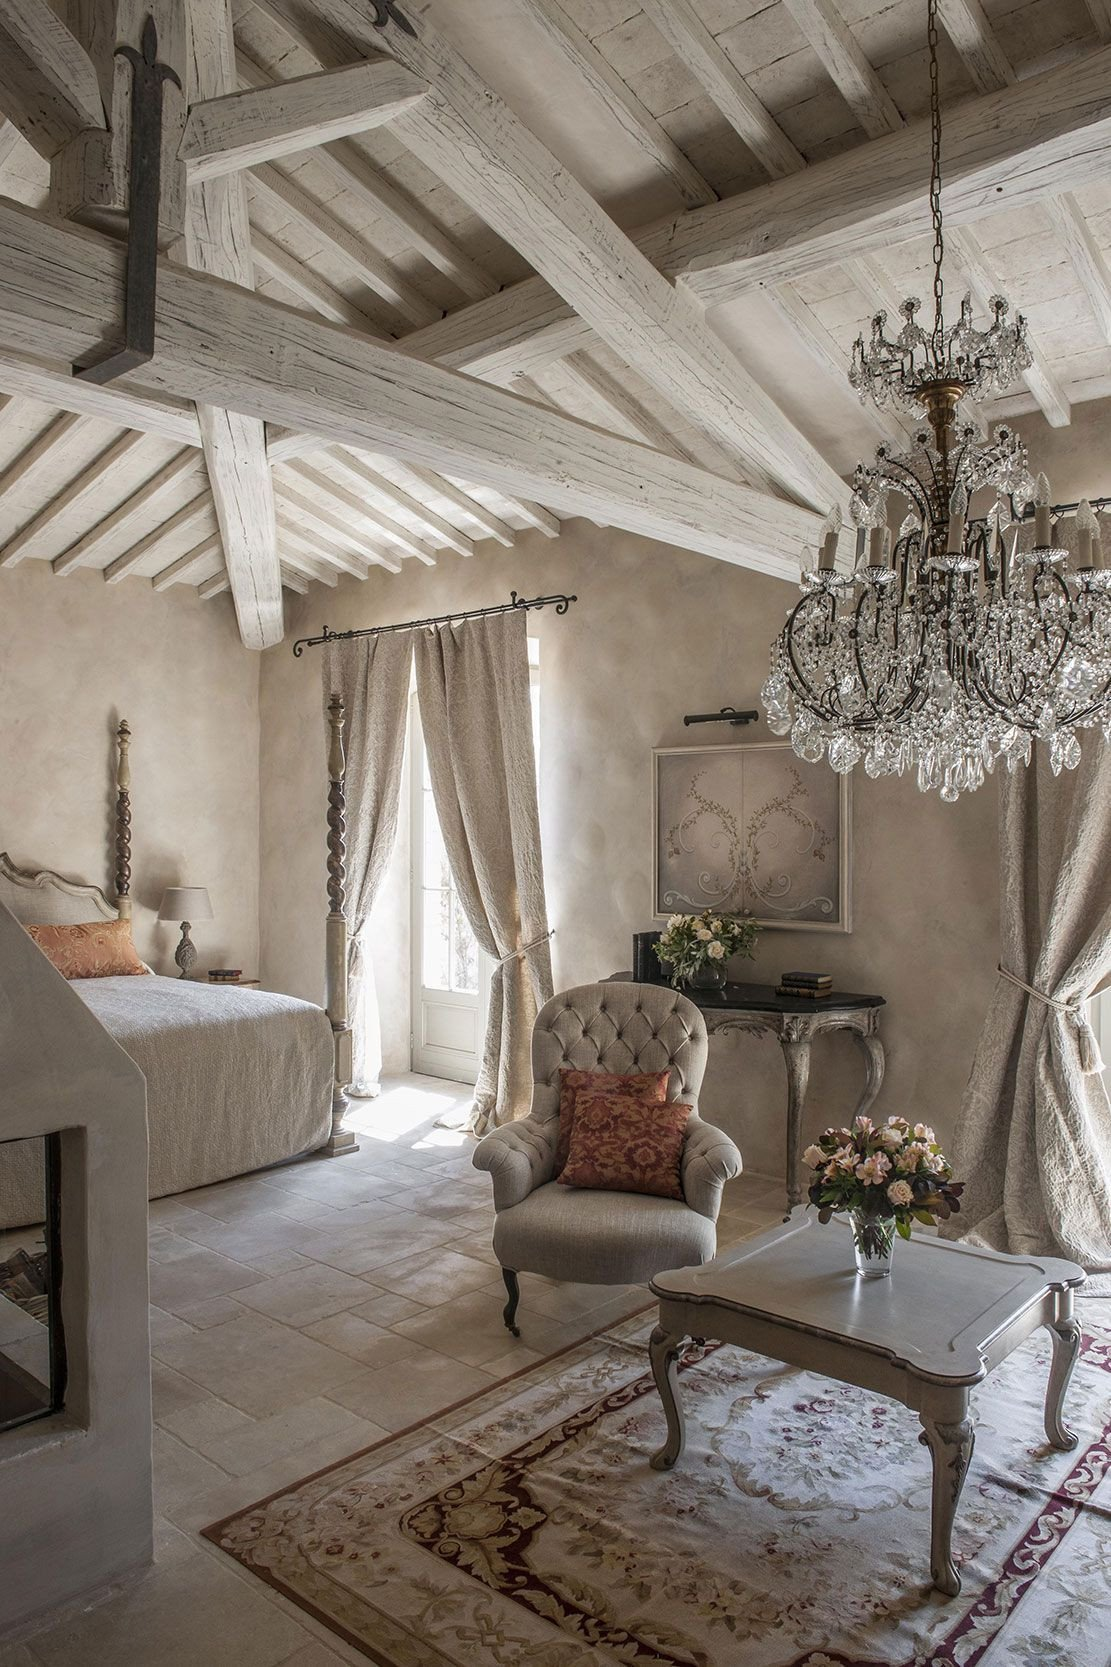 Pictures Of French Country Decor New 10 Tips for Creating the Most Relaxing French Country Bedroom Ever Home Decor